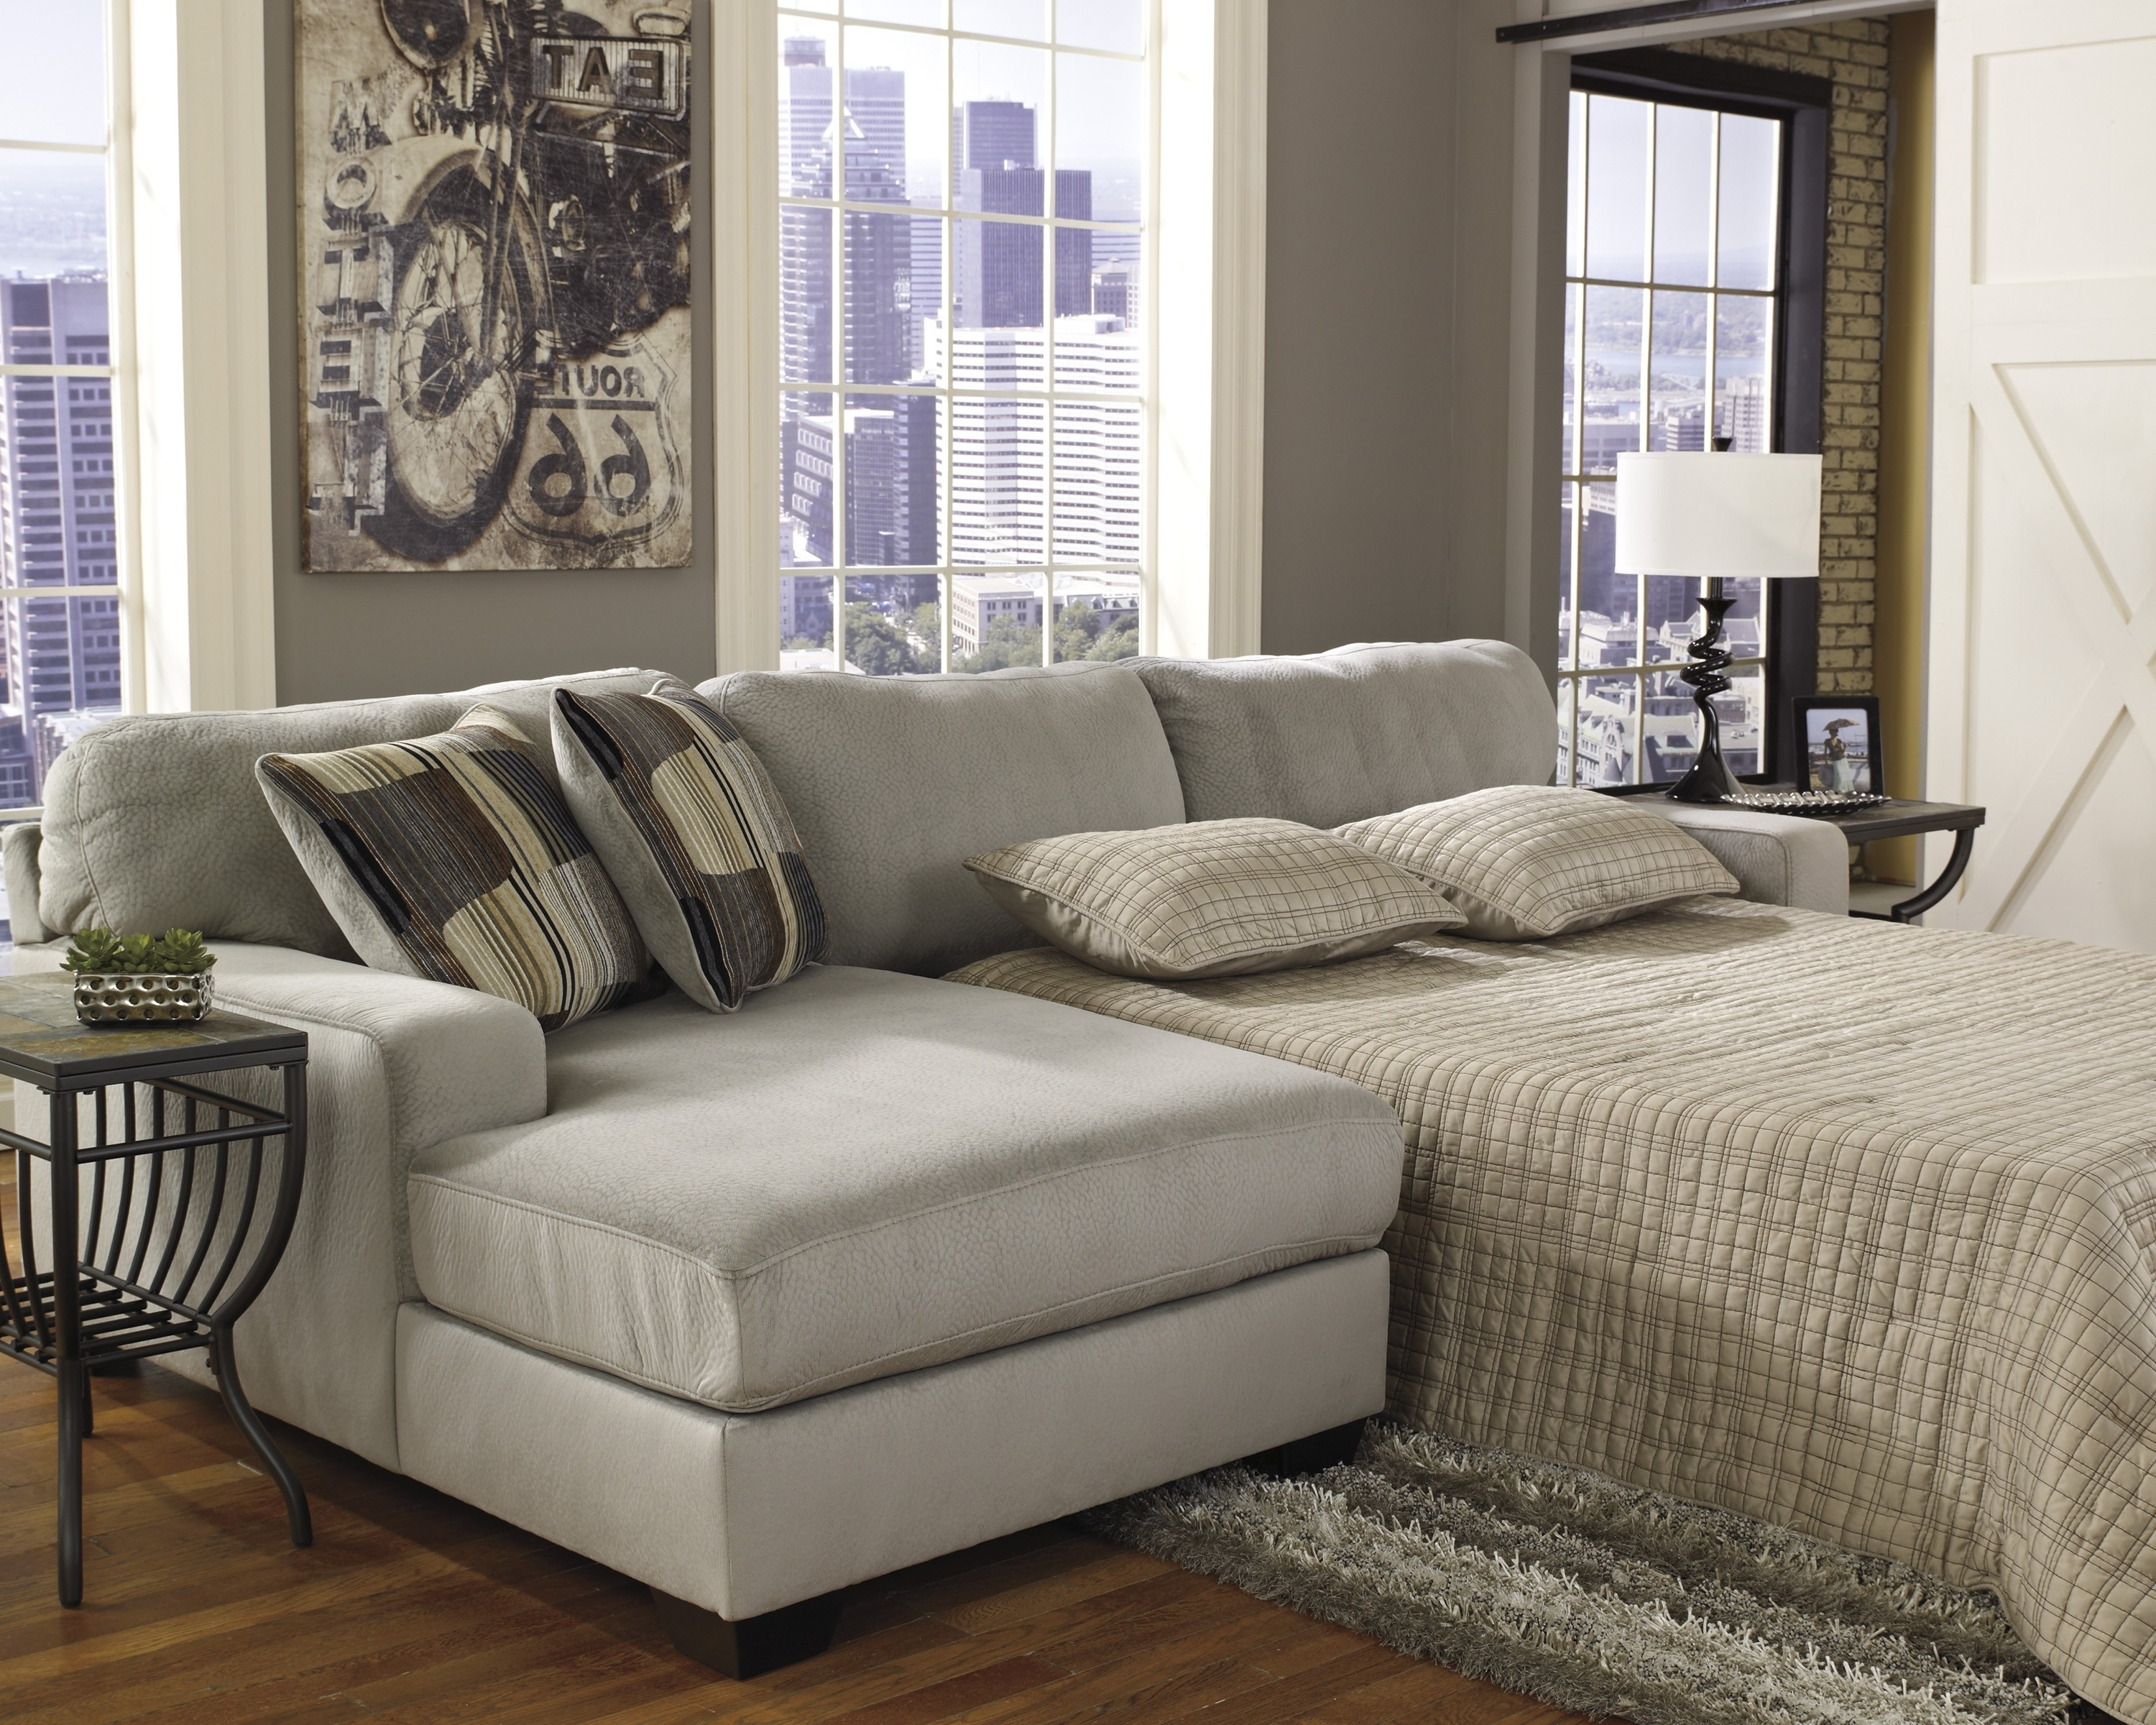 Preferred Sectional Sofa With Chaise And Sleeper – Cleanupflorida Inside Sectional Sofas At Calgary (View 10 of 20)